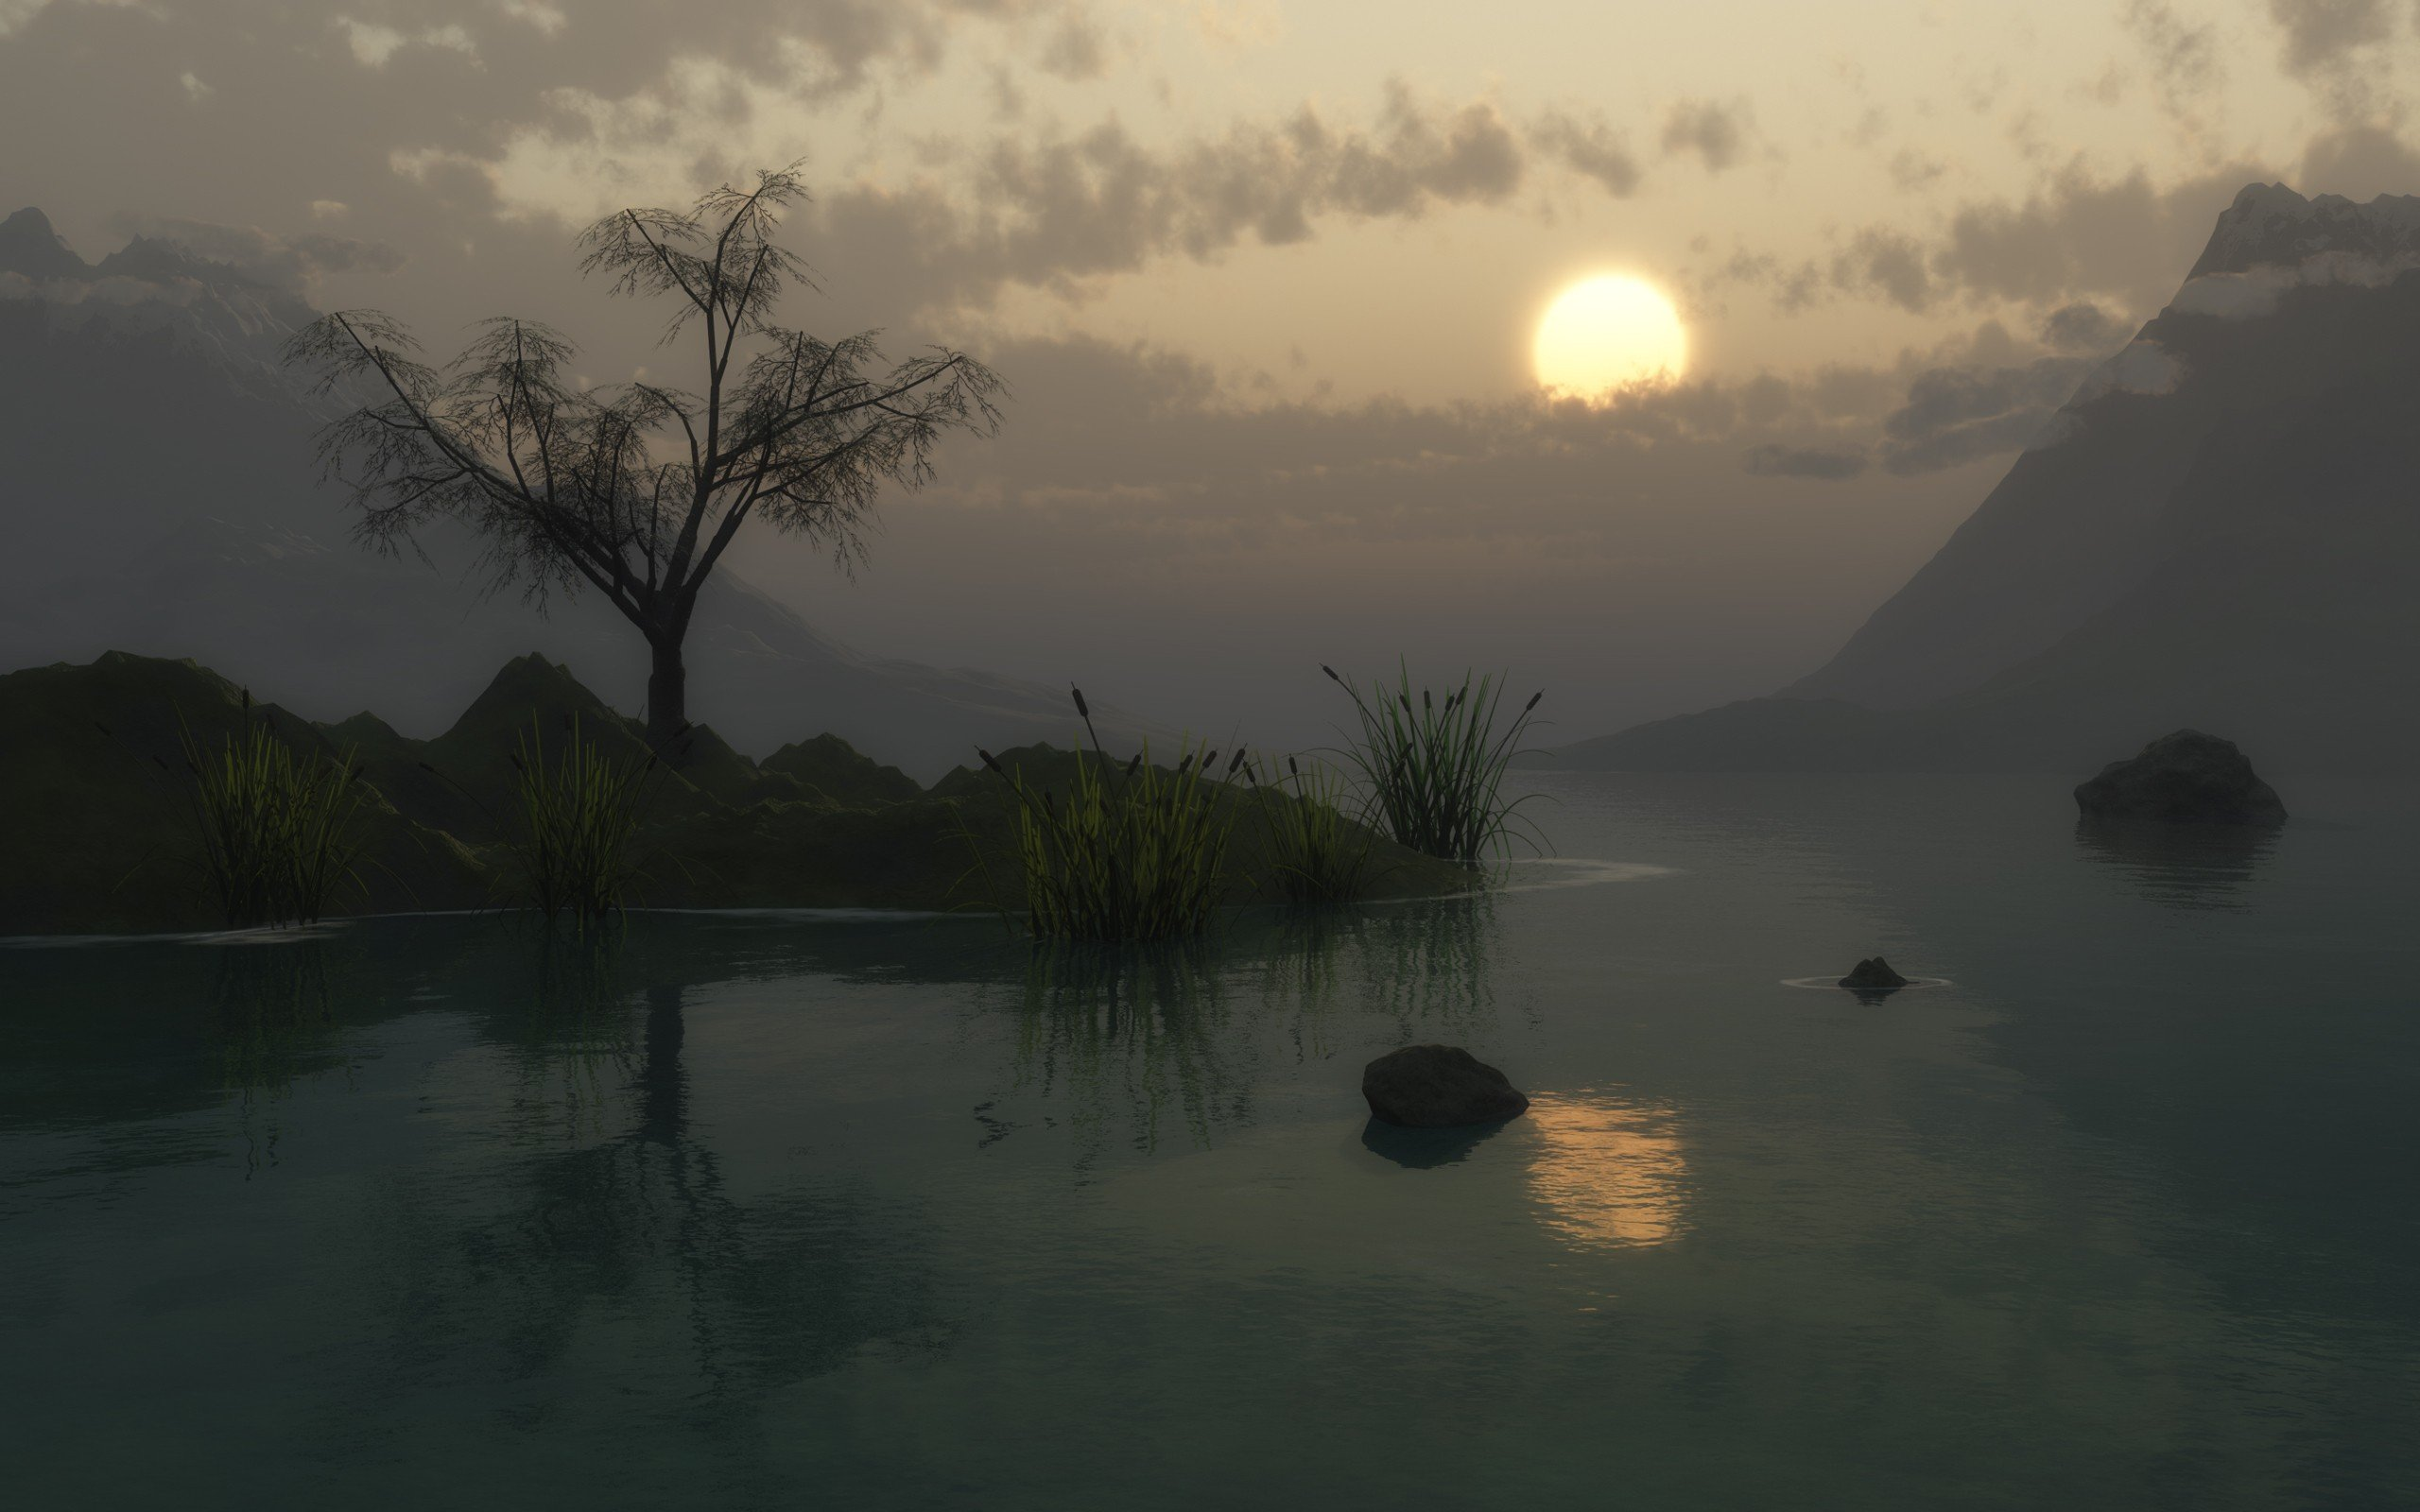 sunset nature 3D renders swamps